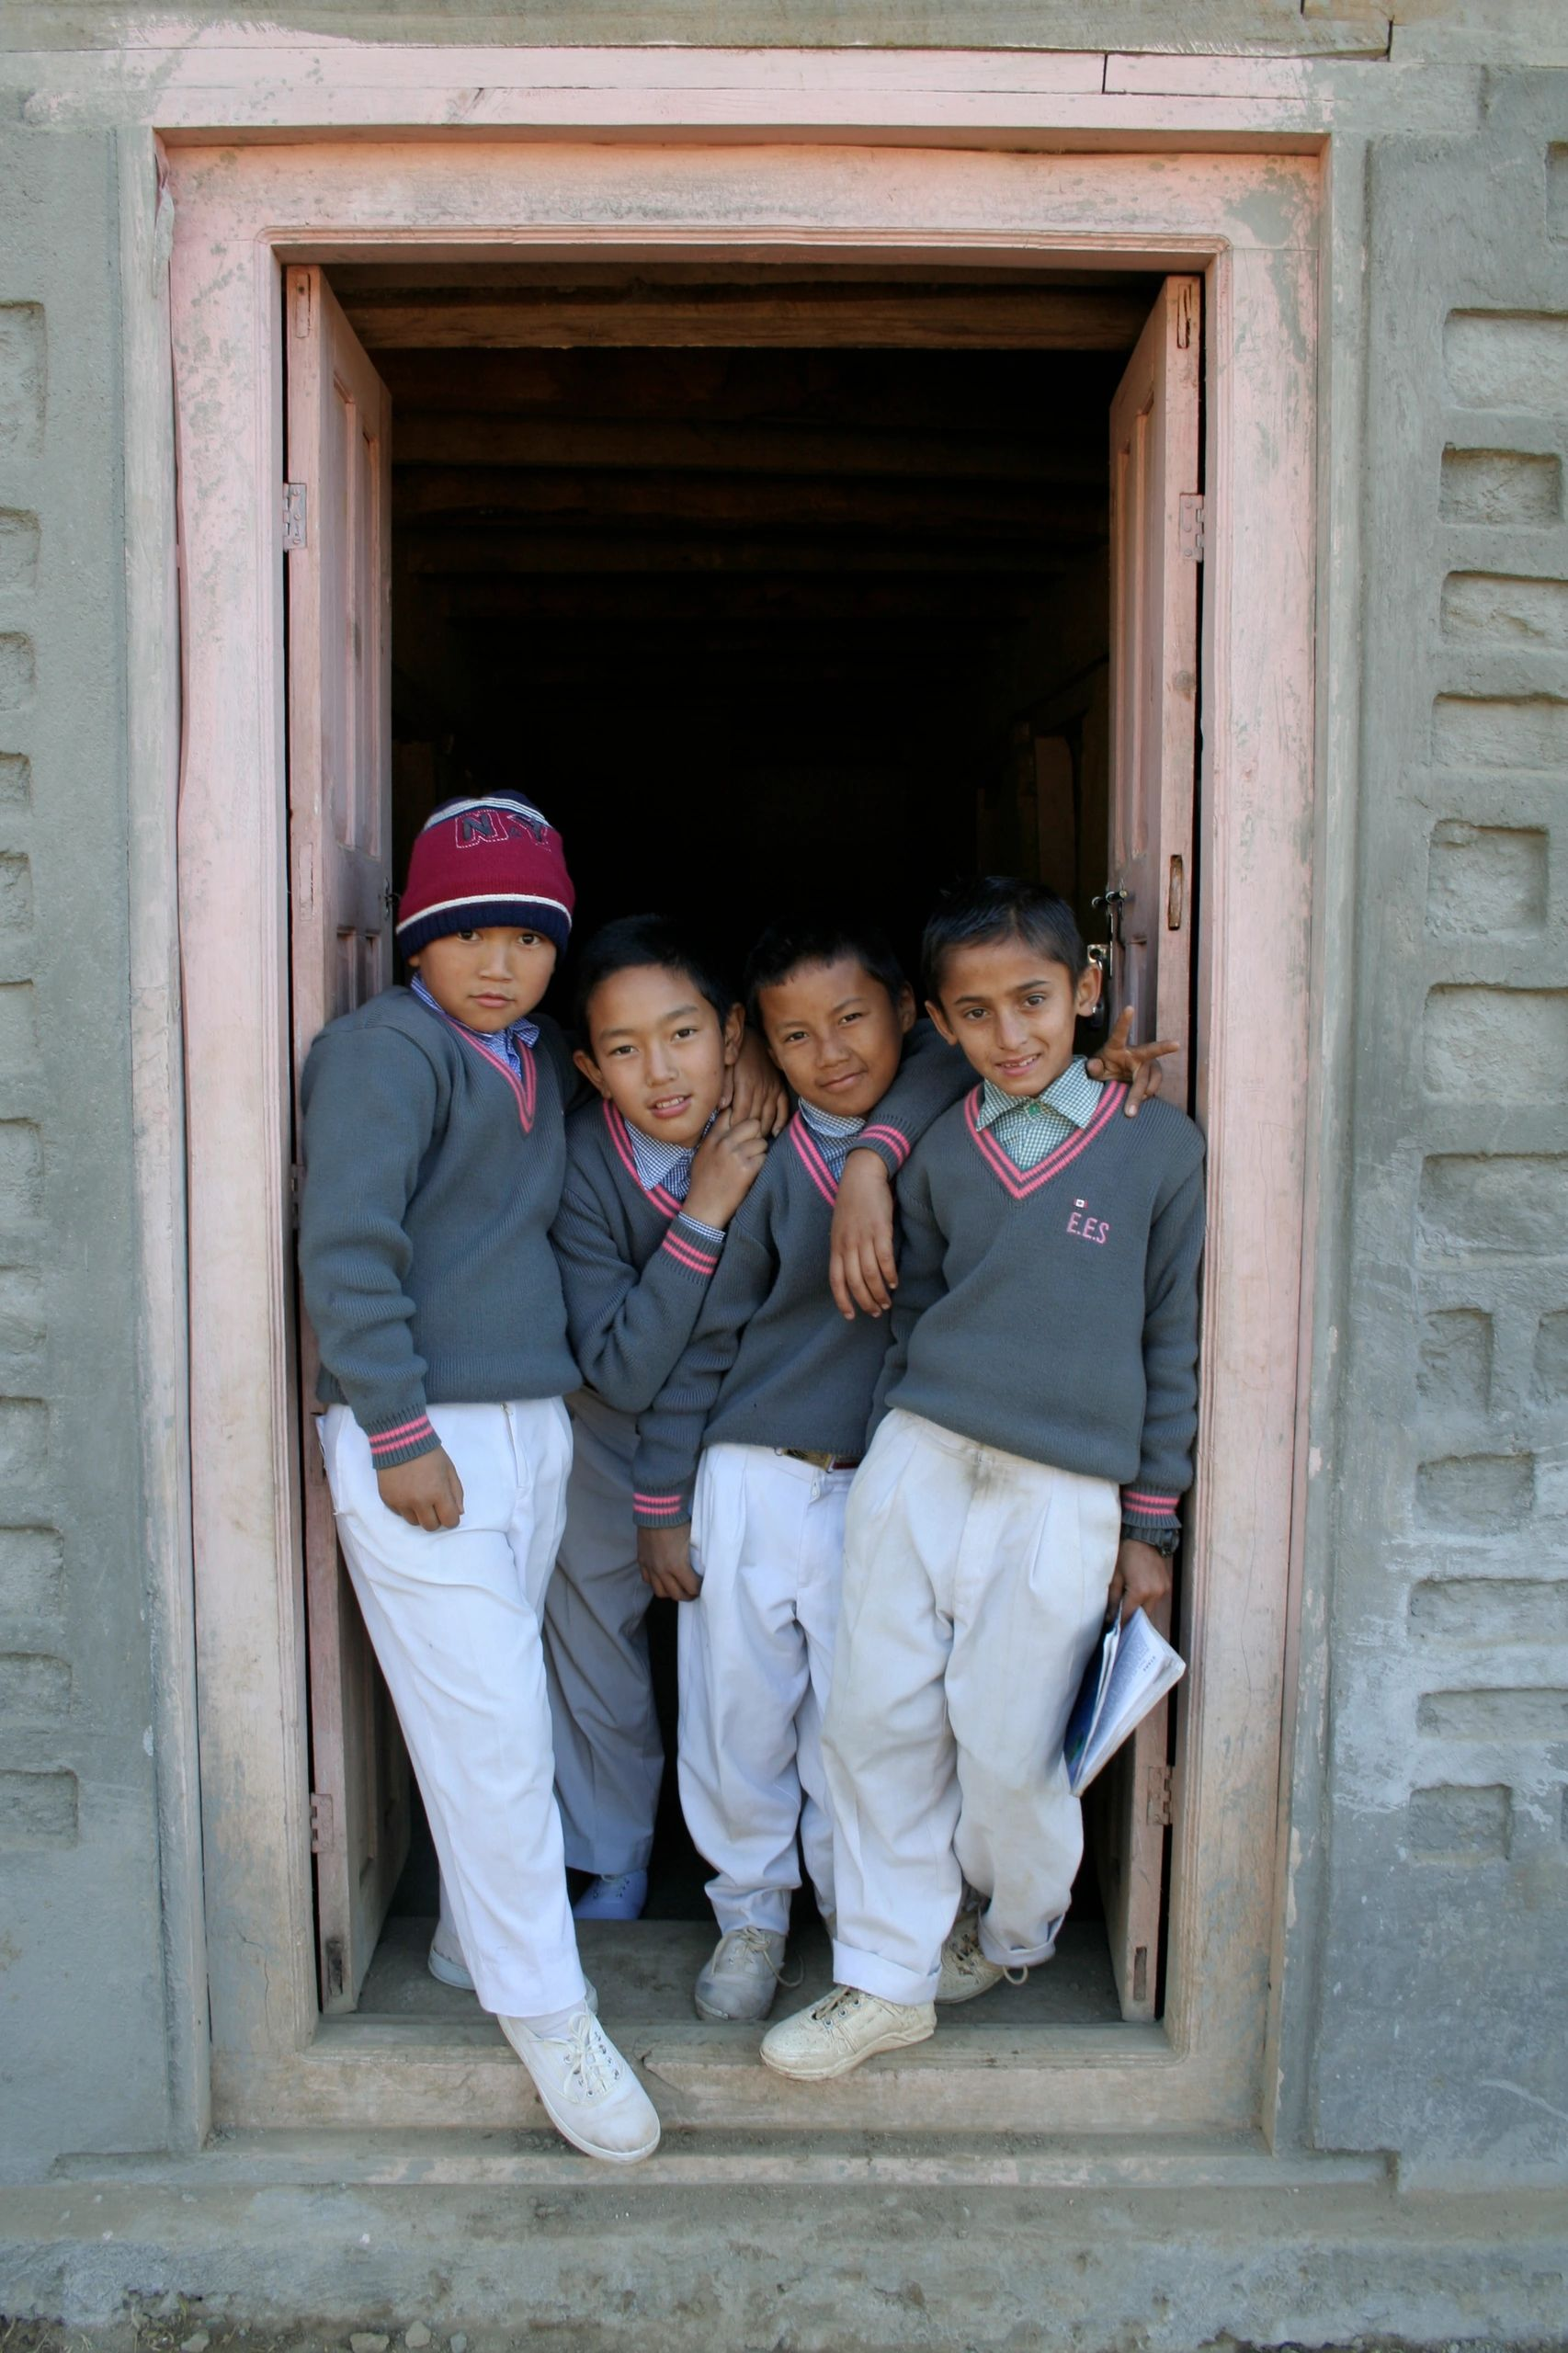 Students of the Everest English School in Sanitar, Nepal pose for a photo at the end of the day.